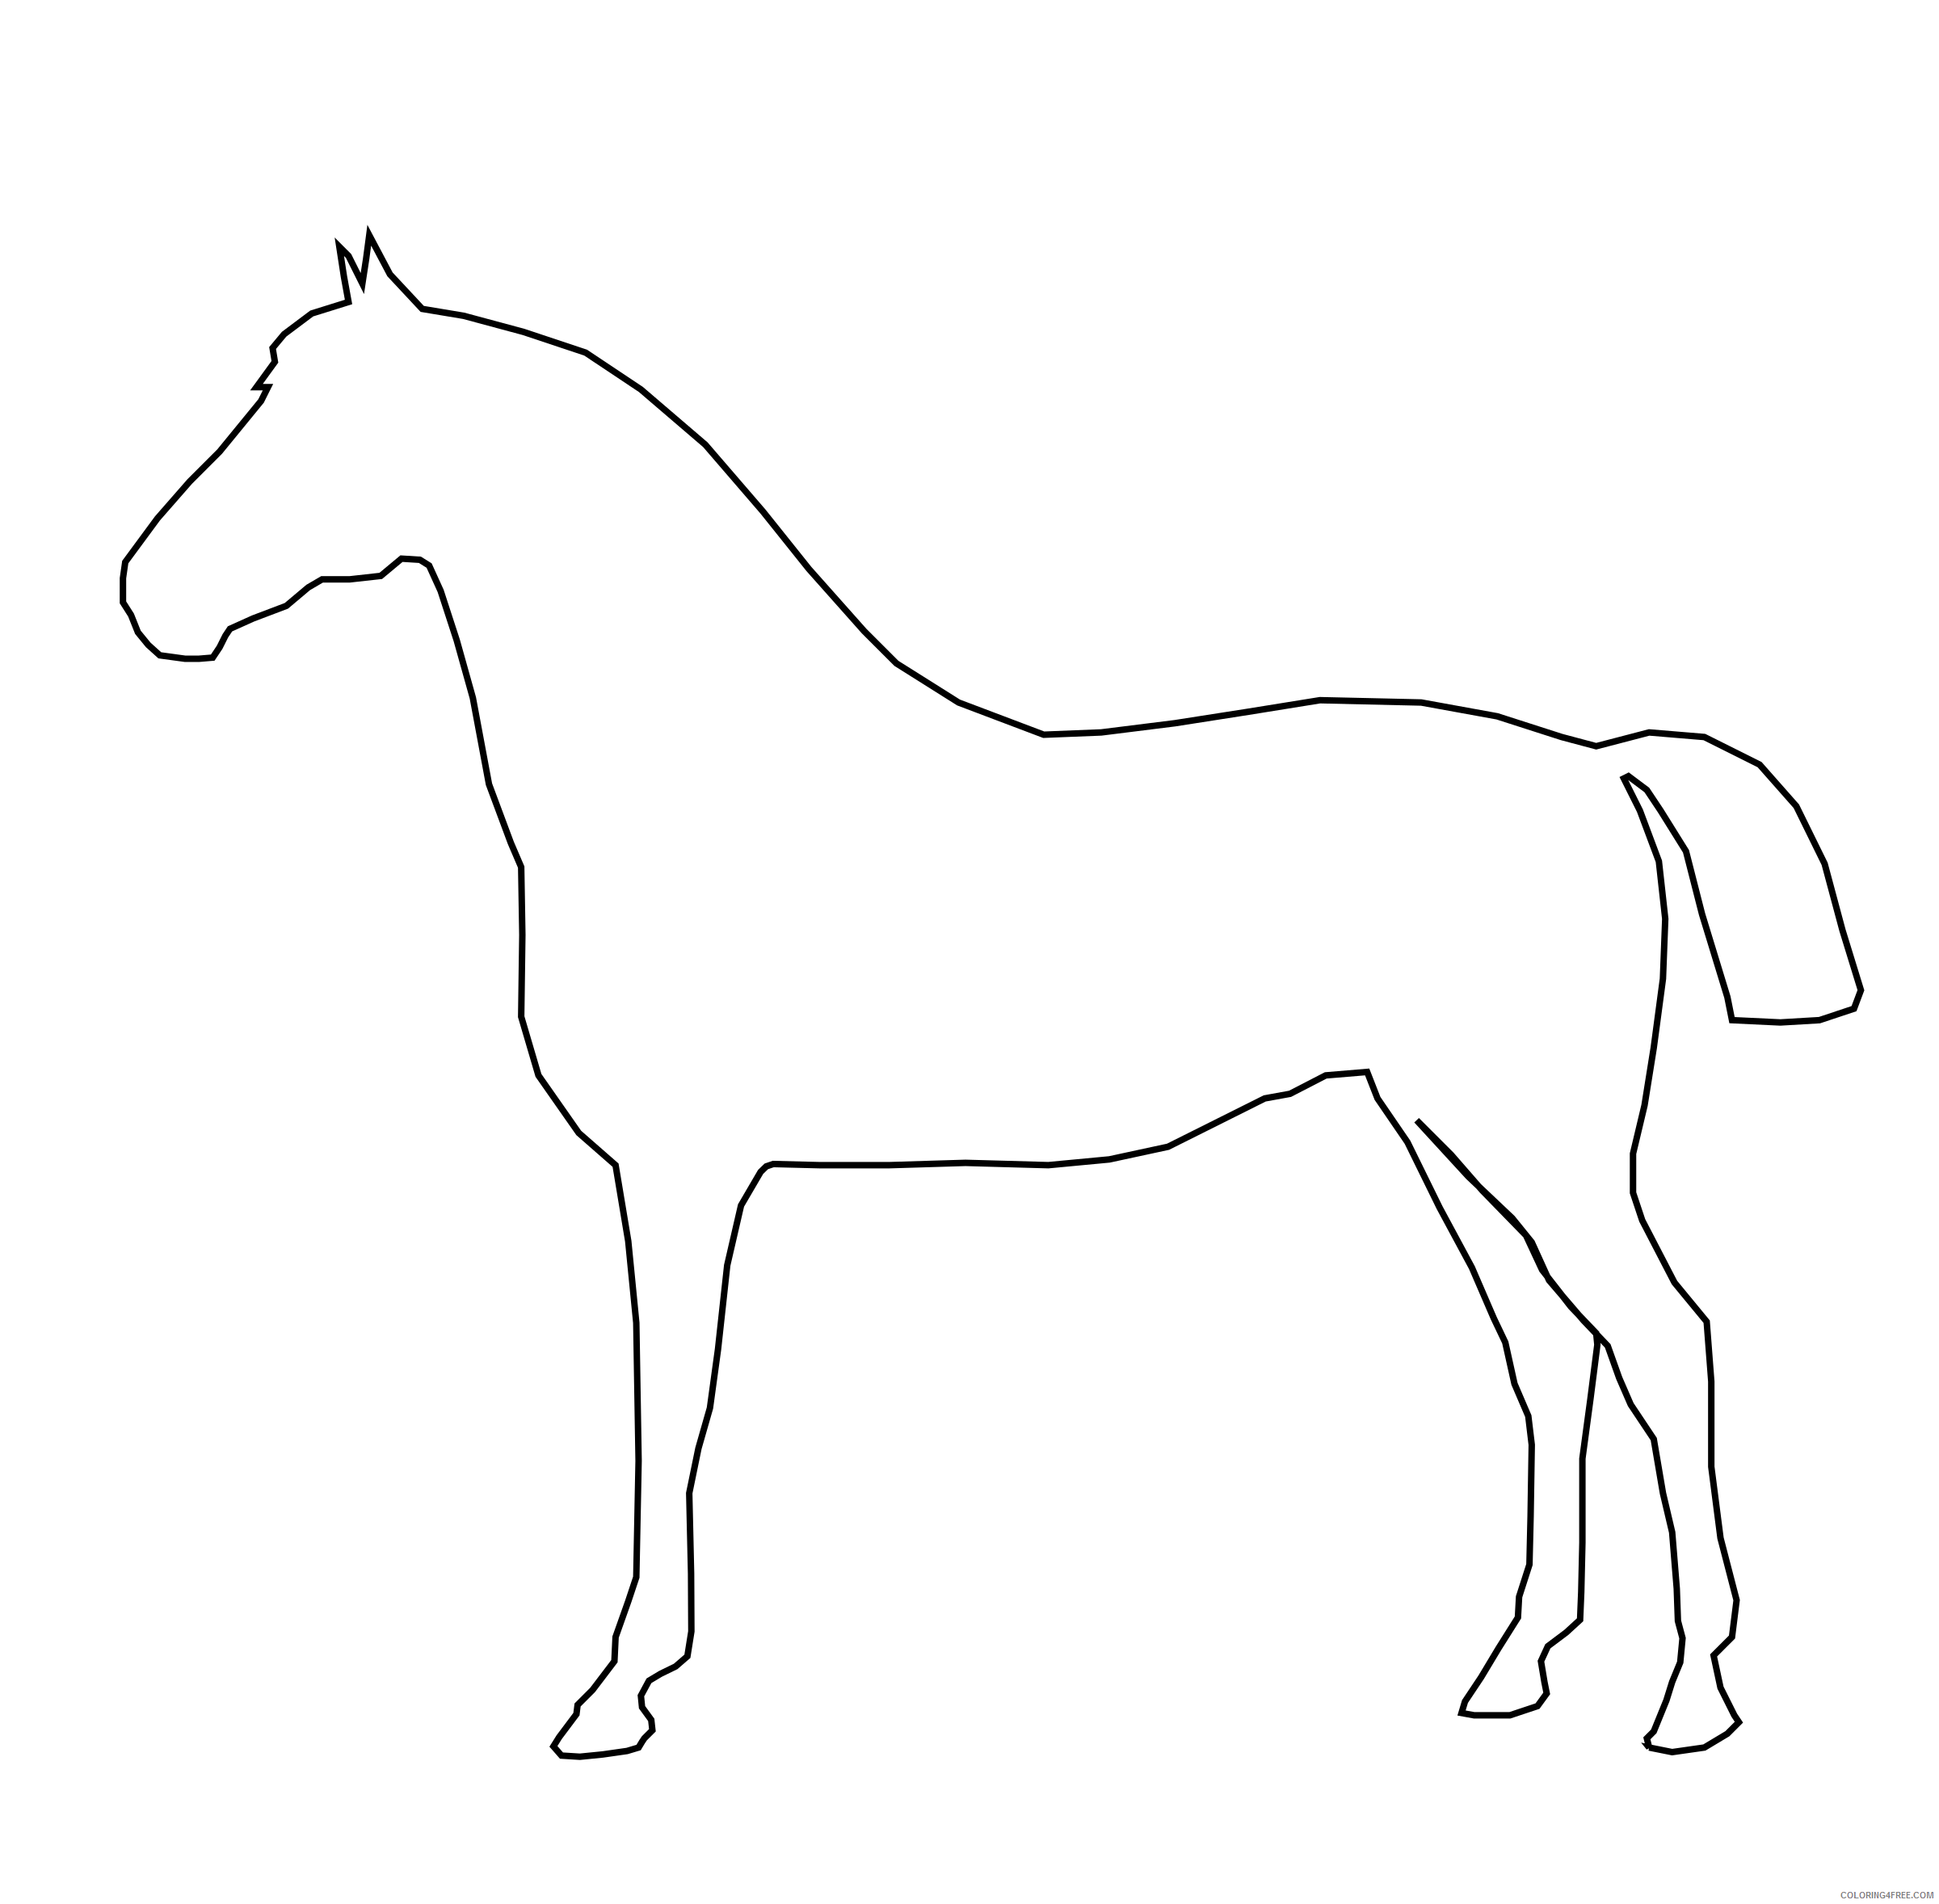 Horse Coloring Pages horse 2 3 Printable Coloring4free